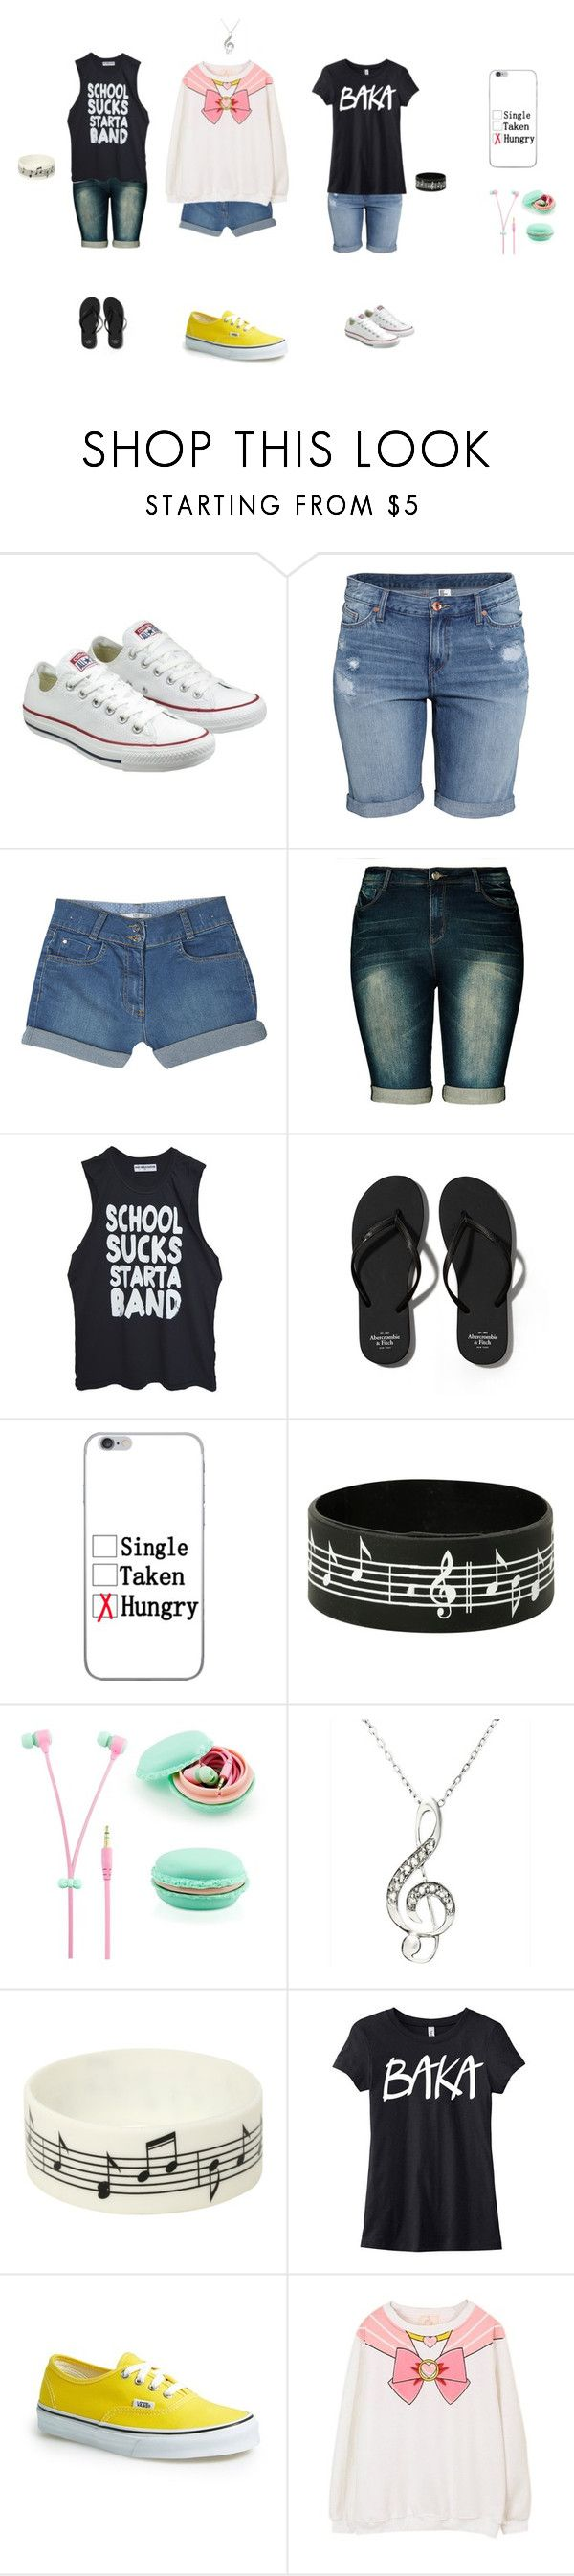 """CheesyCake"" by nerdyredd ❤ liked on Polyvore featuring Converse, H&M, M&S, City Chic, High Heels Suicide, Abercrombie & Fitch, Hot Topic, Samsung, Music Notes and Vans"